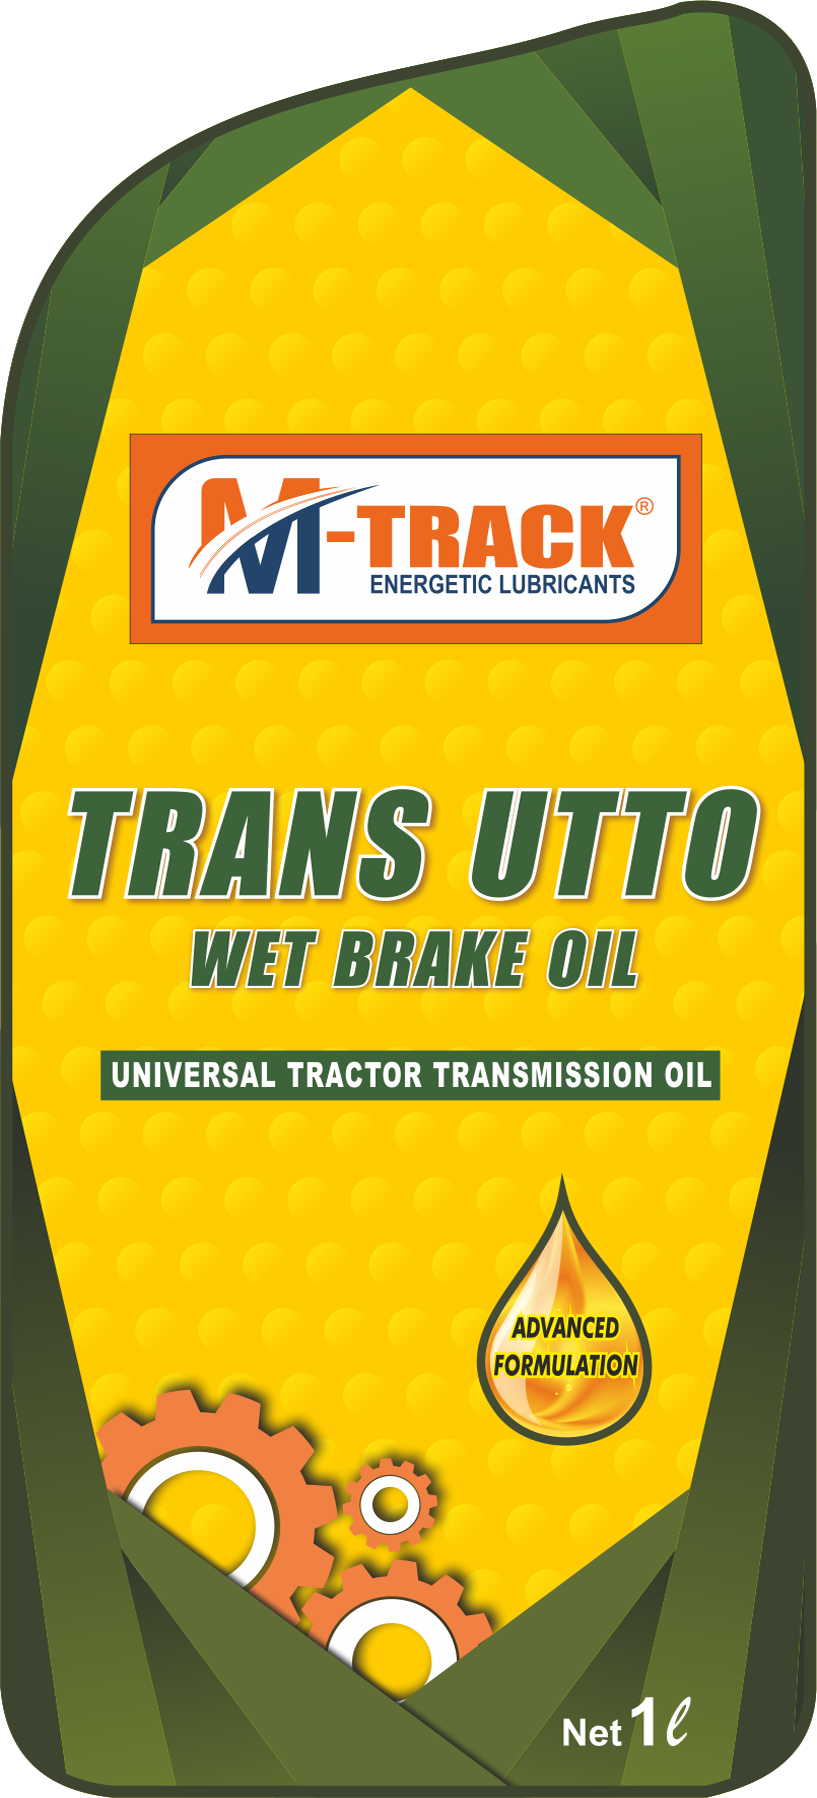 TRANS UTTO WET BREAK OIL